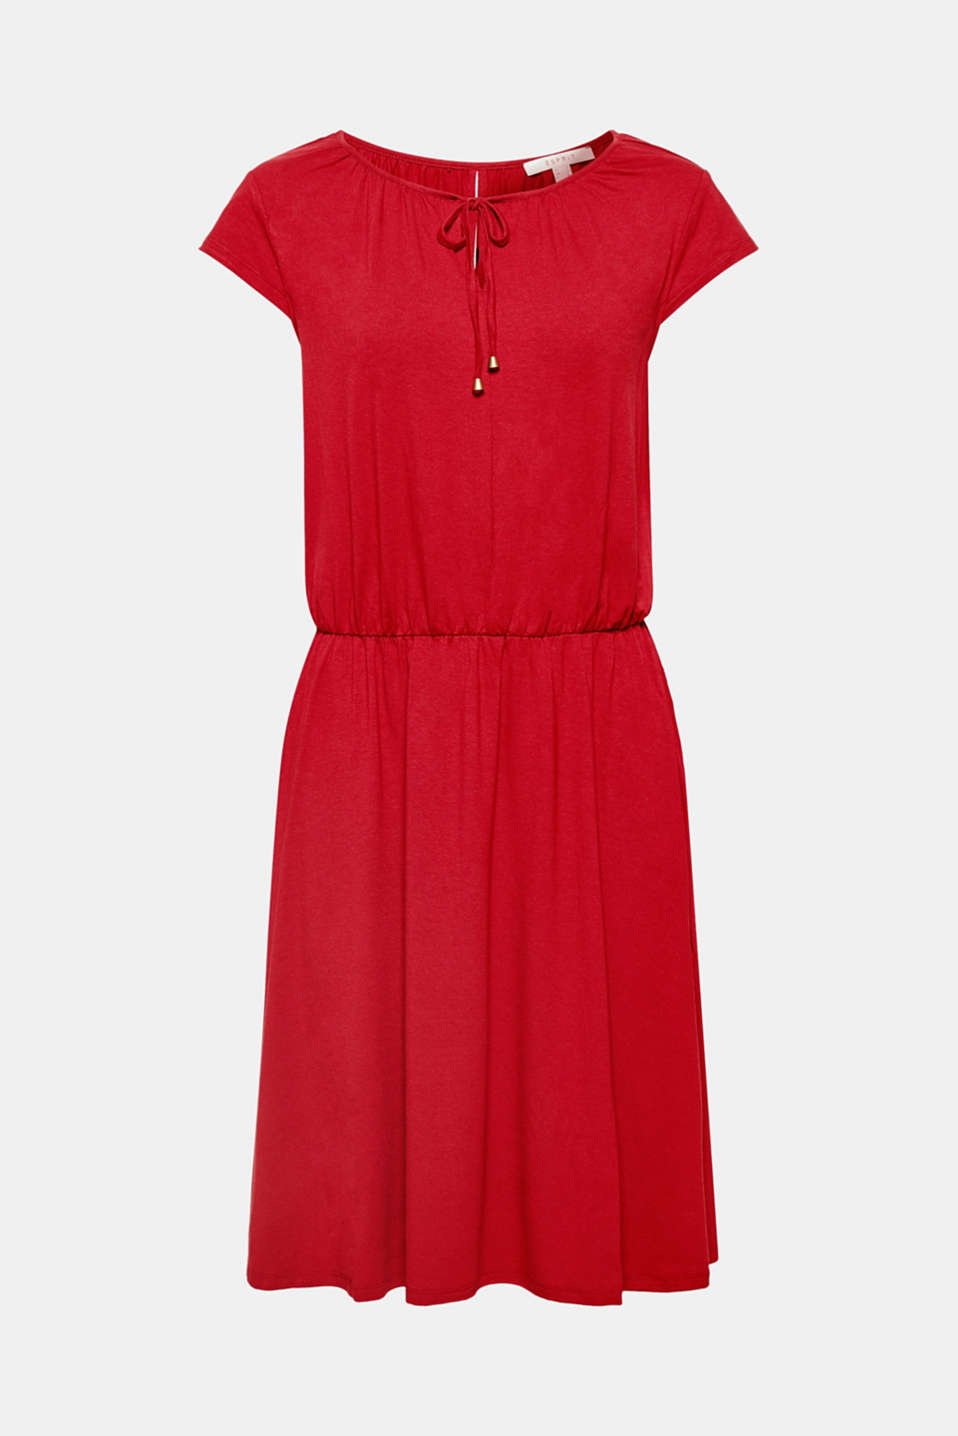 This simple stretch jersey dress with a wide neckline, cropped sleeves and a swirling skirt is unbeatably comfortable and great for many occasions!